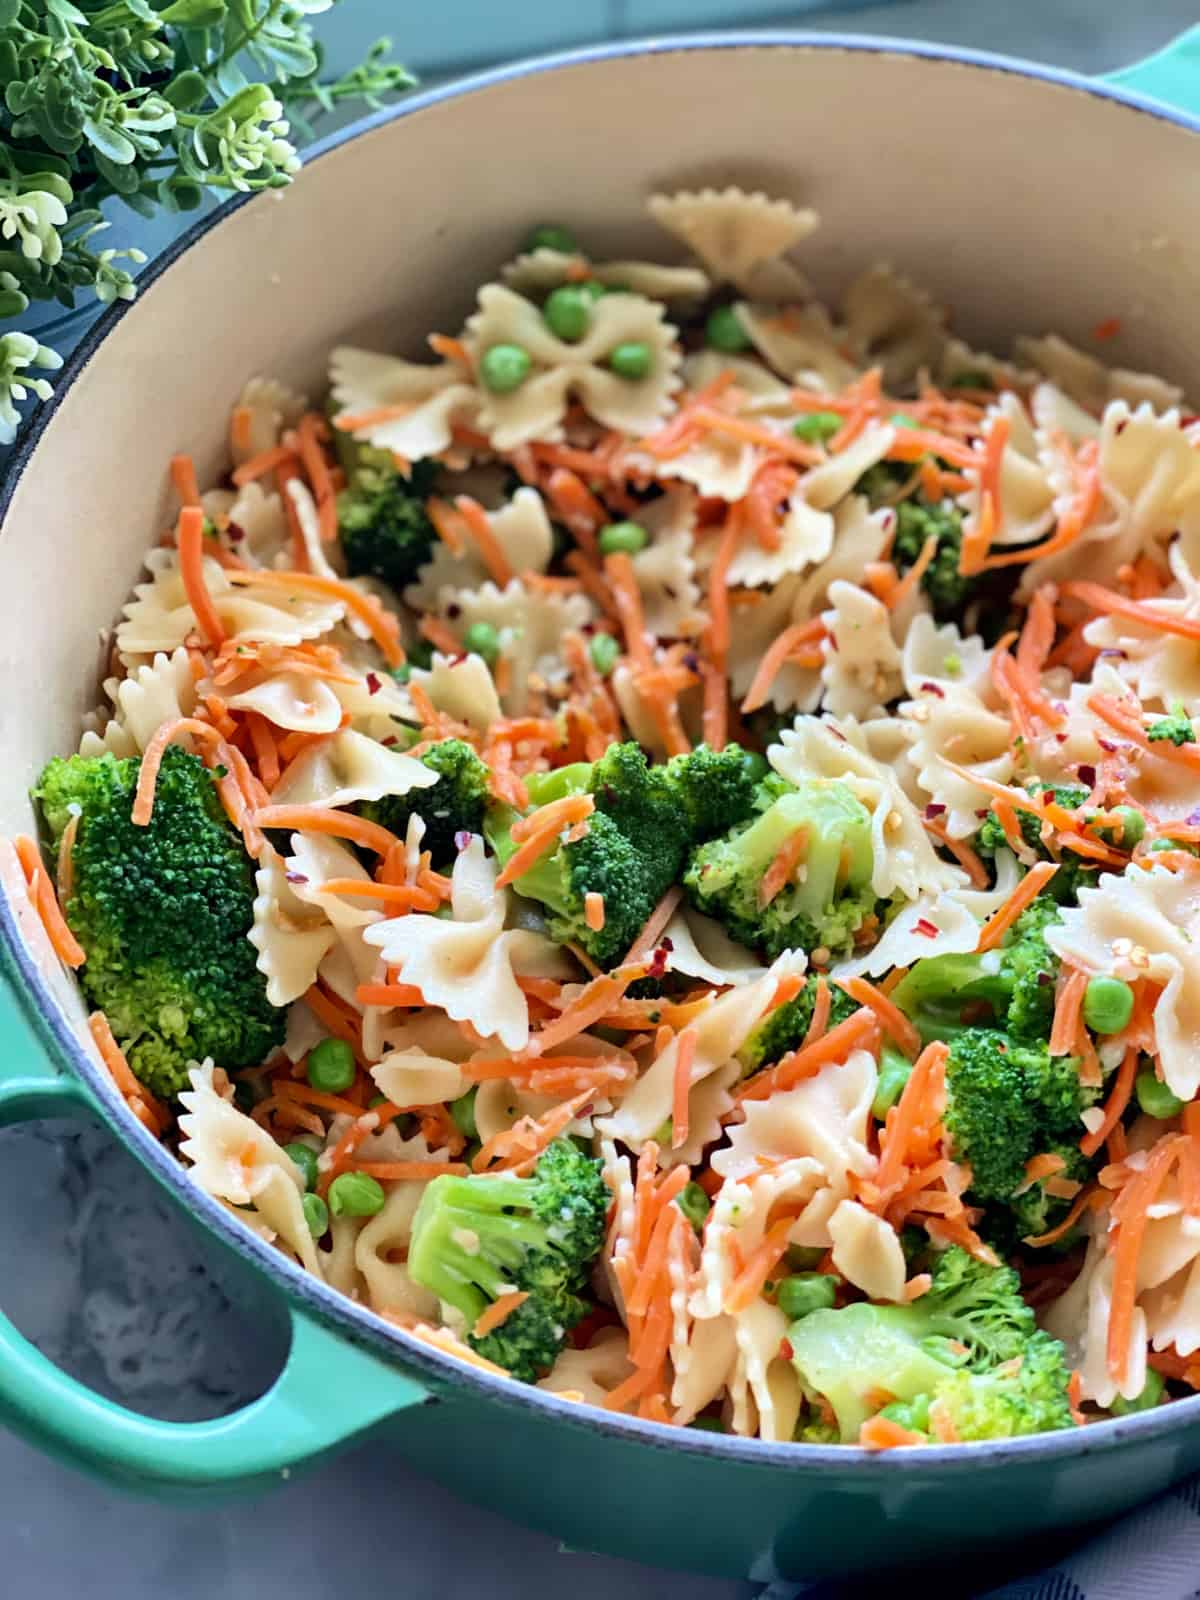 Green pot filled with bow tie pasta, shredded carrots, broccoli, green peas, and red pepper flakes.